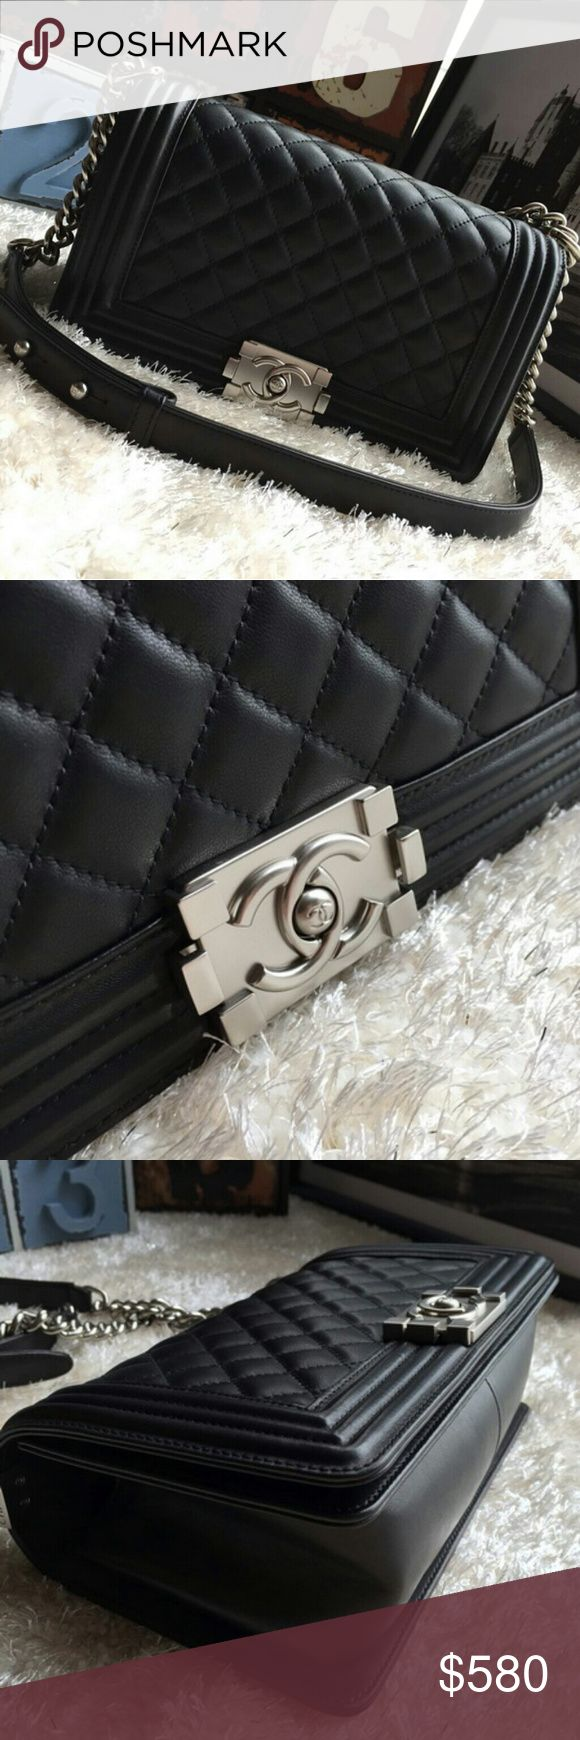 """Discount Brand New handbags bags read descriptions Please Comment your email to receive more detail and new discounts. To see more photos on Instagram ID: """"bellayeezycom"""" . pls comment your email or contact us so that we can give you new discounts and show you many good reviews. WhatsAPP: +8617128079630 or Email: toplvbags@outlook.com also welcome to comment your email or whatsapp for new discounts. thank you chanel Bags"""